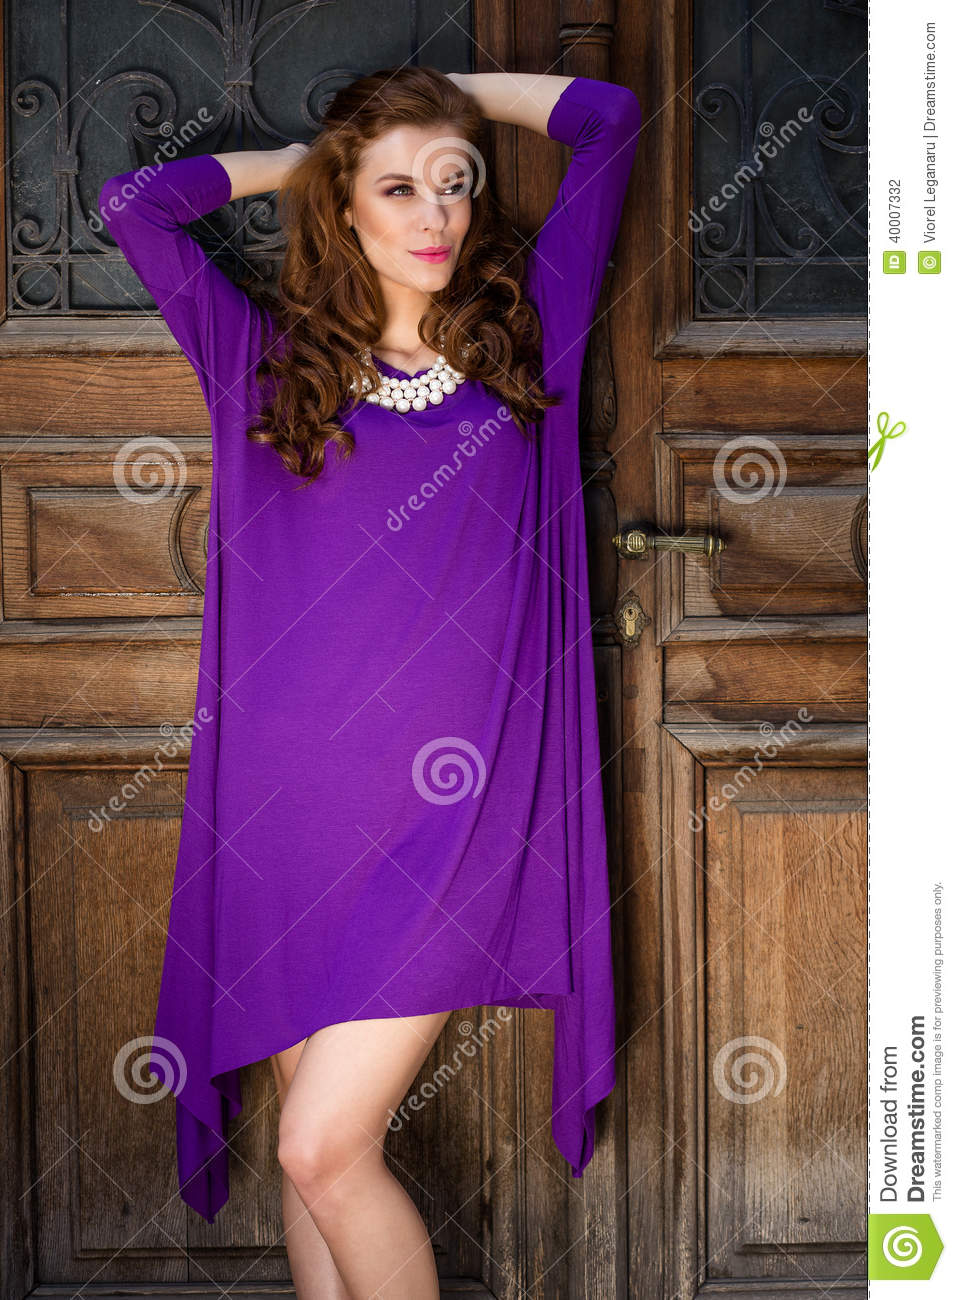 belle jeune femme avec la robe violette photo stock image 40007332. Black Bedroom Furniture Sets. Home Design Ideas